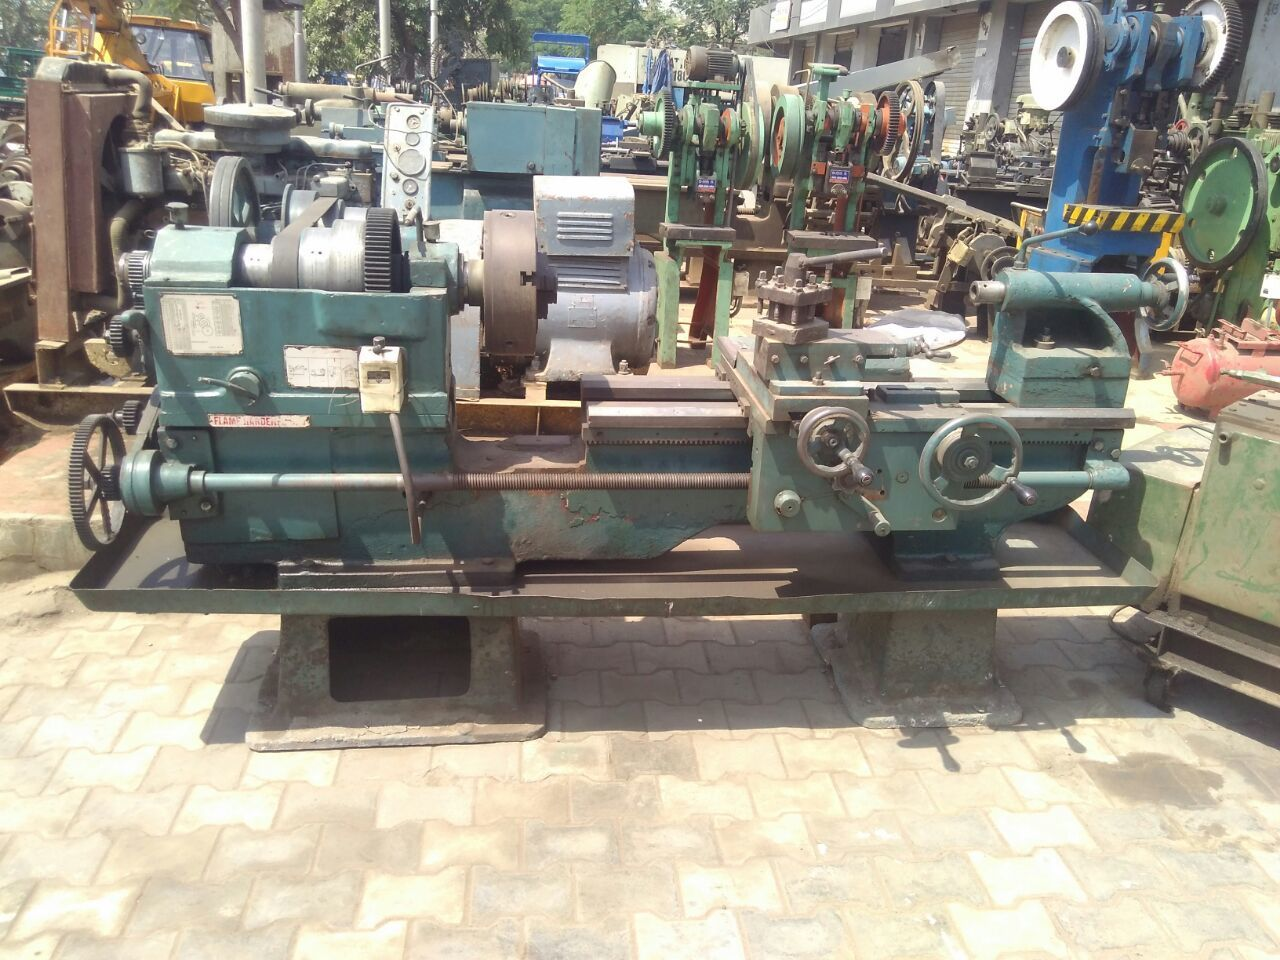 Lathe machine 7.5 ft